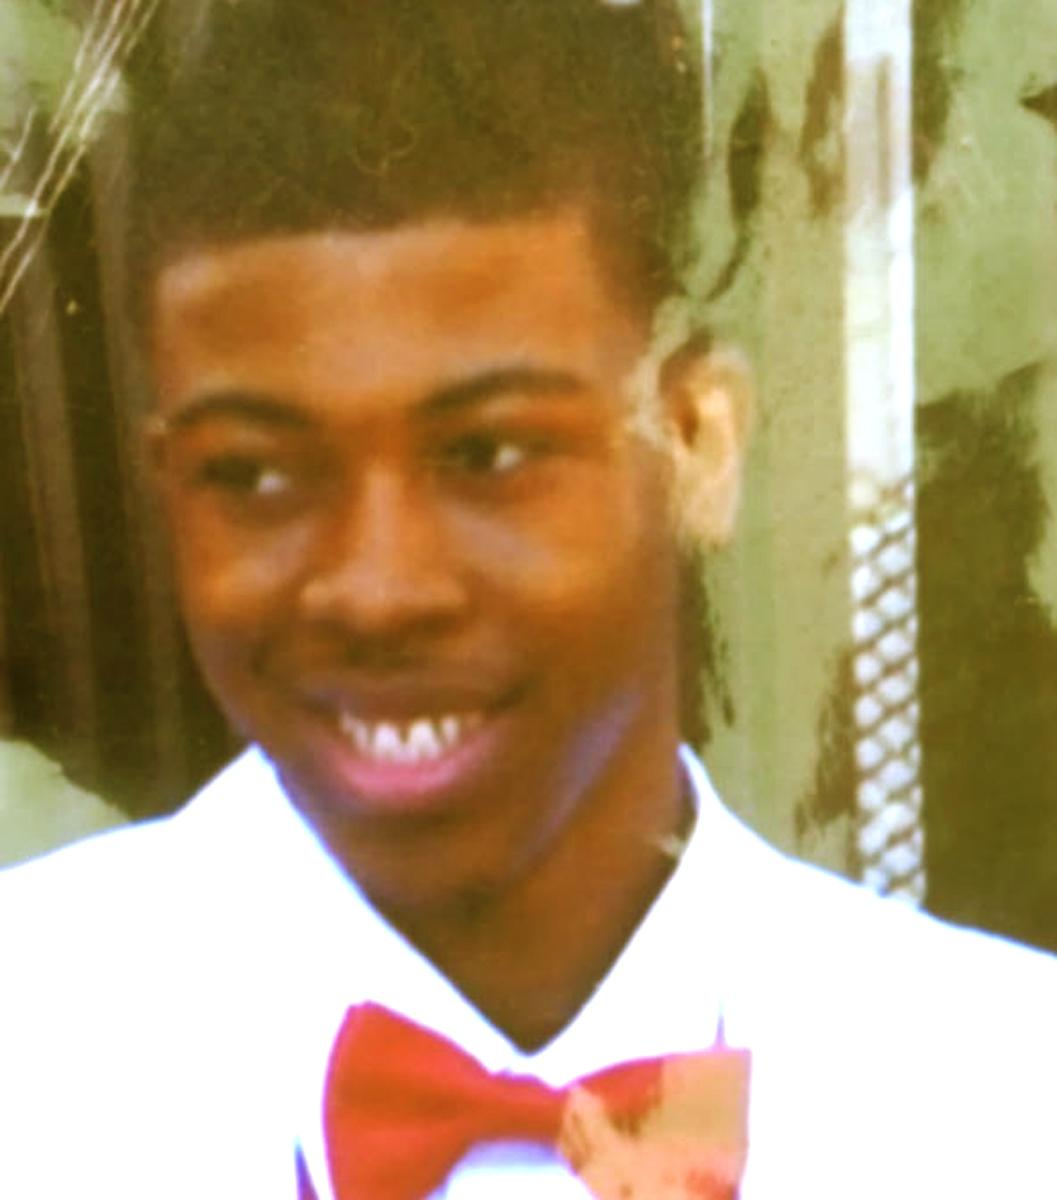 Quintonio LeGrier was fatally shot by Chicago Police Officer Robert Rialmo in Dec. 2015./Photo handout, courtesy of the LeGrier Family